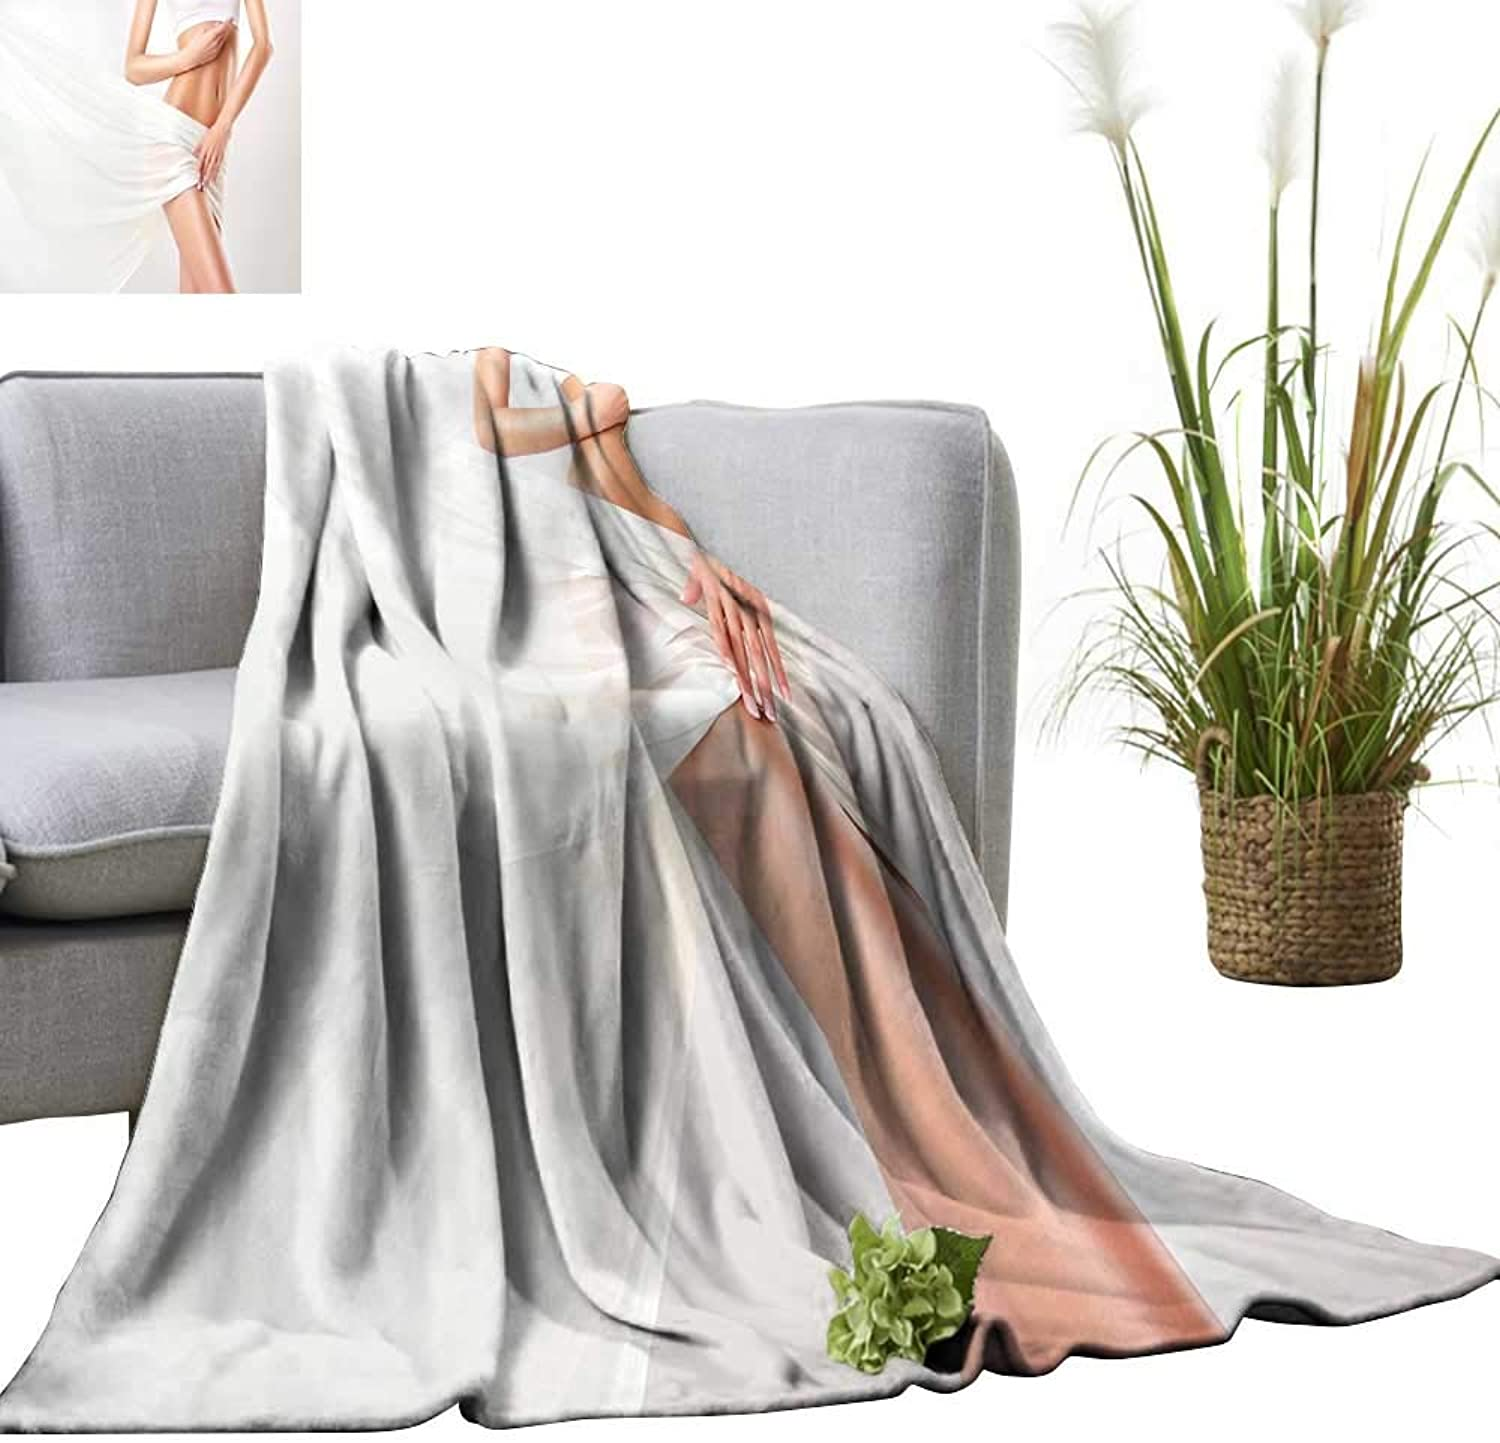 YOYI Single-Sided blanketperfect Slim Tone Young Body The Girl examplae Sports for Bed & Couch Sofa Easy Care 60 x63